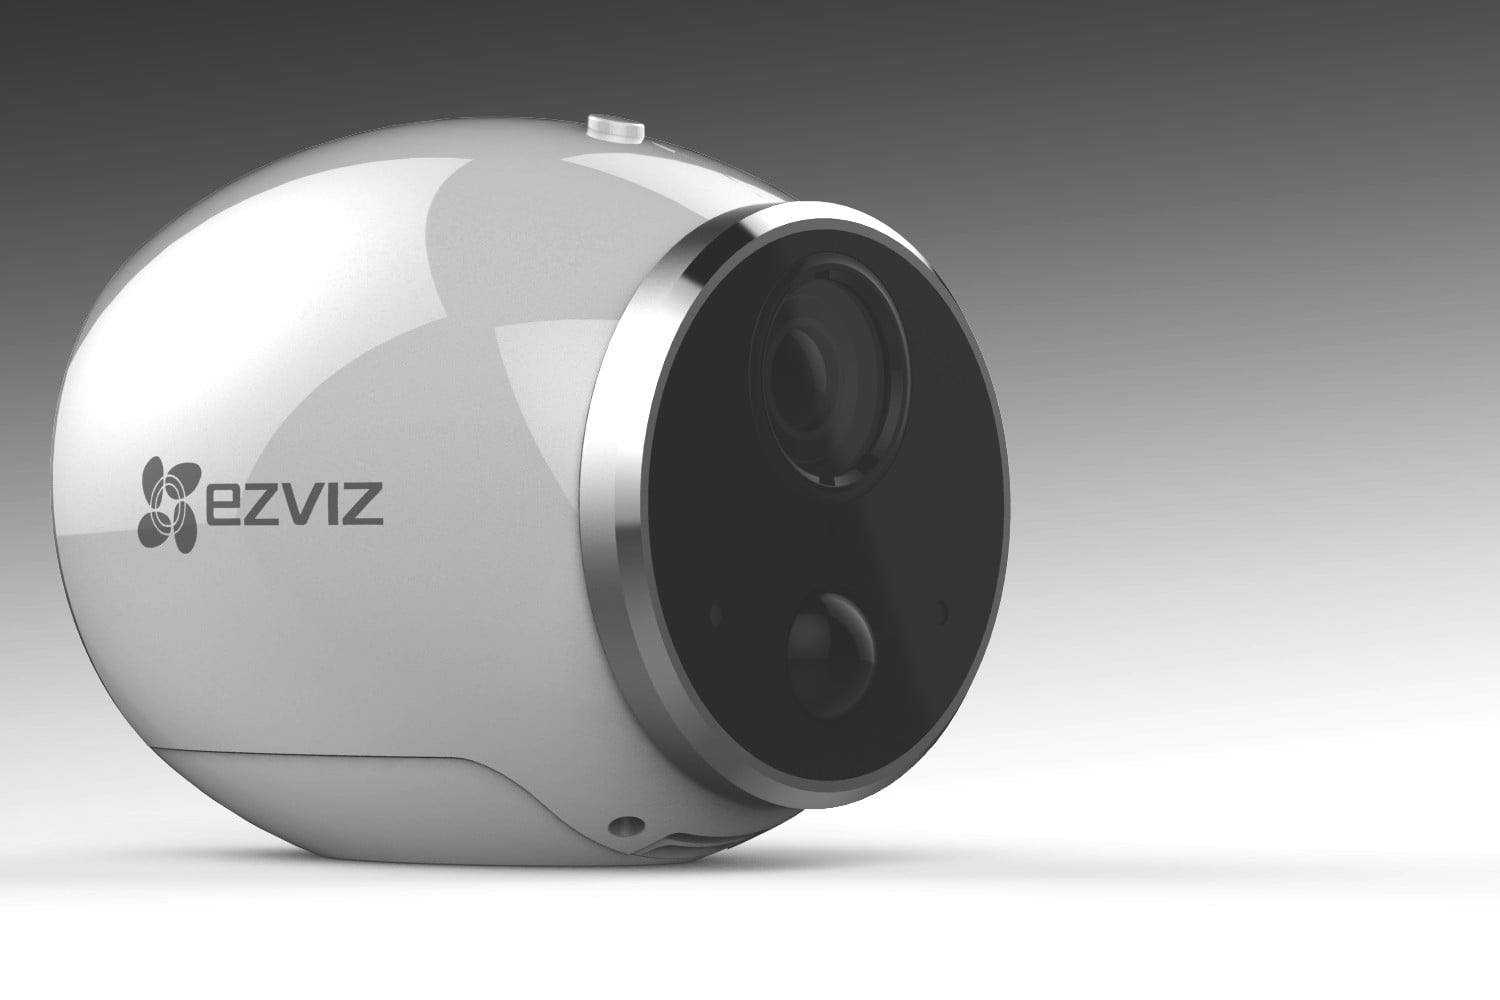 Ezviz Mini Trooper wirelessly watches over your home, up to 9 months on 1 charge